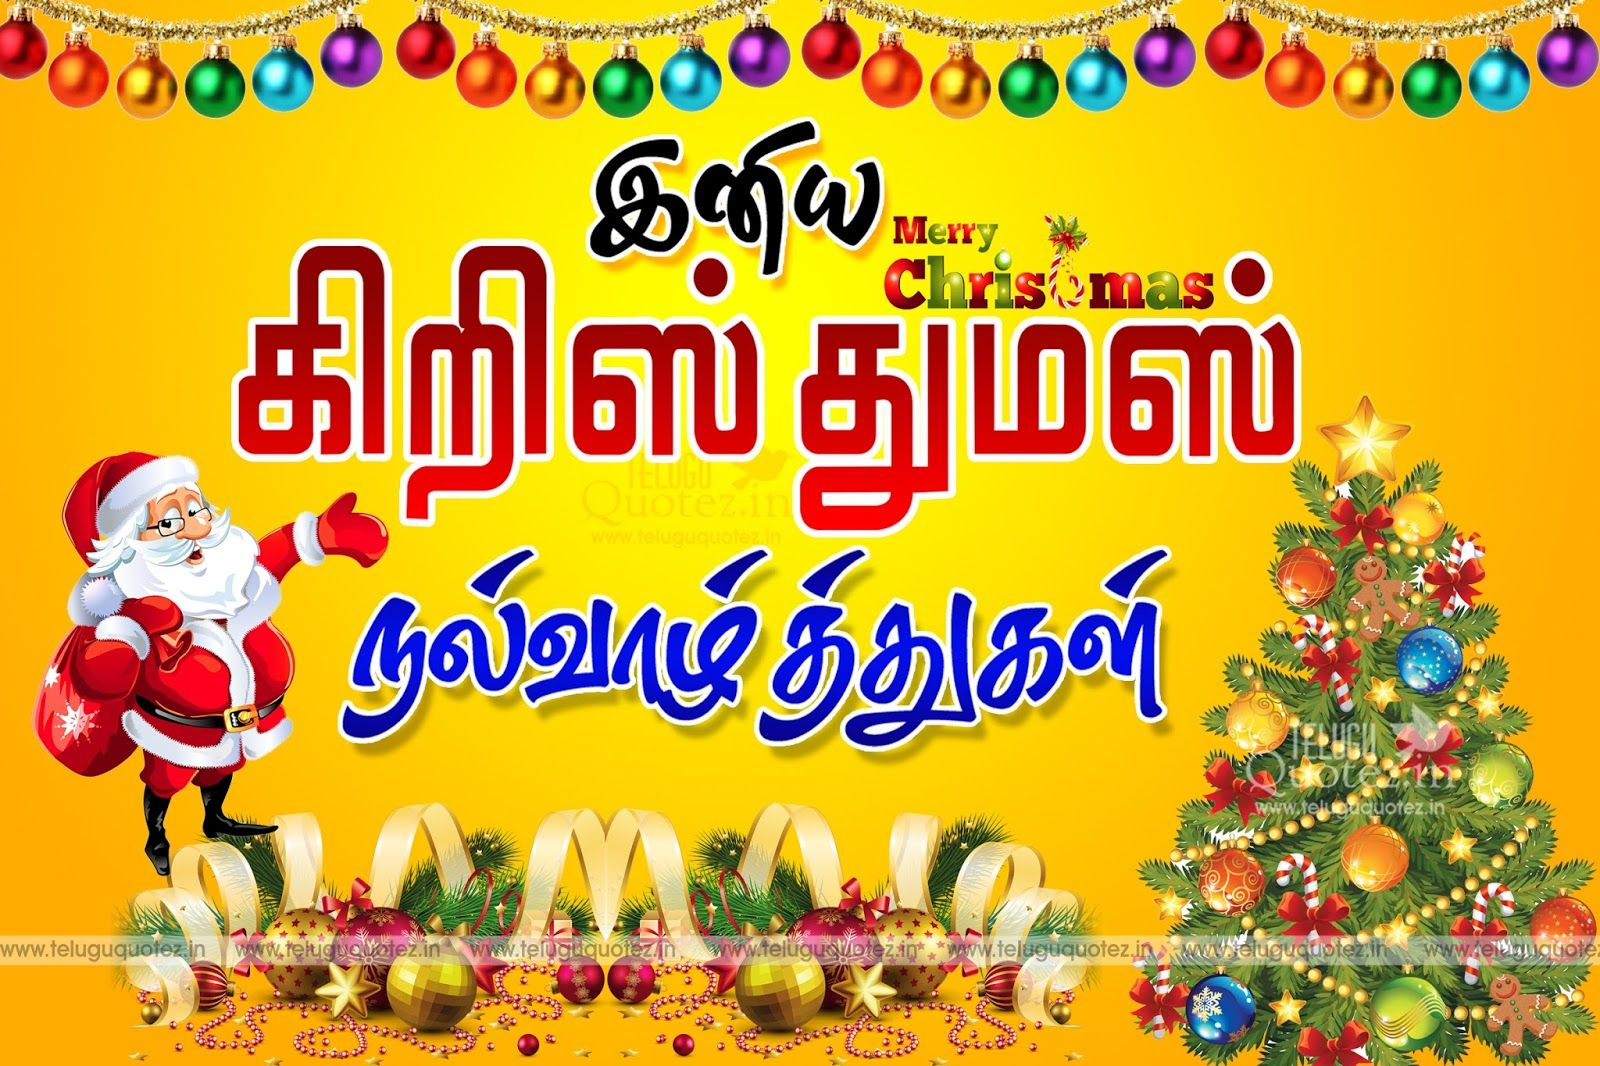 Cute christmas quotes and sayings sms - Happy Christmas Tamil Quotes Happy Christmas Tamil Quotes Sayings Happy Christmas Tamil Quotes Sms Happy Christmas